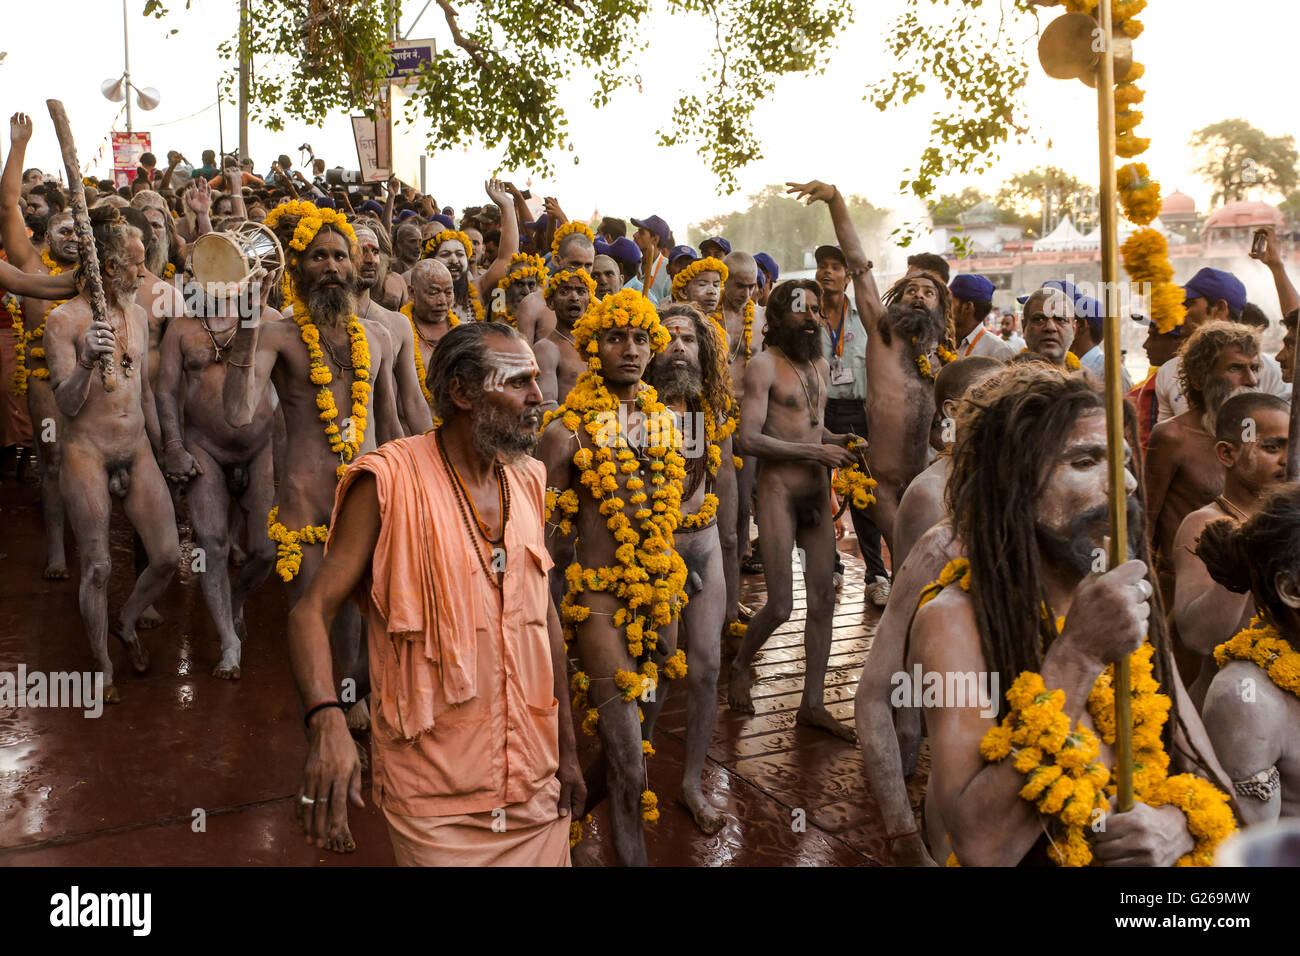 Ujjain, Madhya Pradesh, India, May 21, 2016: Holy Hindu Monks (Naga Sadhus) are going to take holy dip in the early - Stock Image